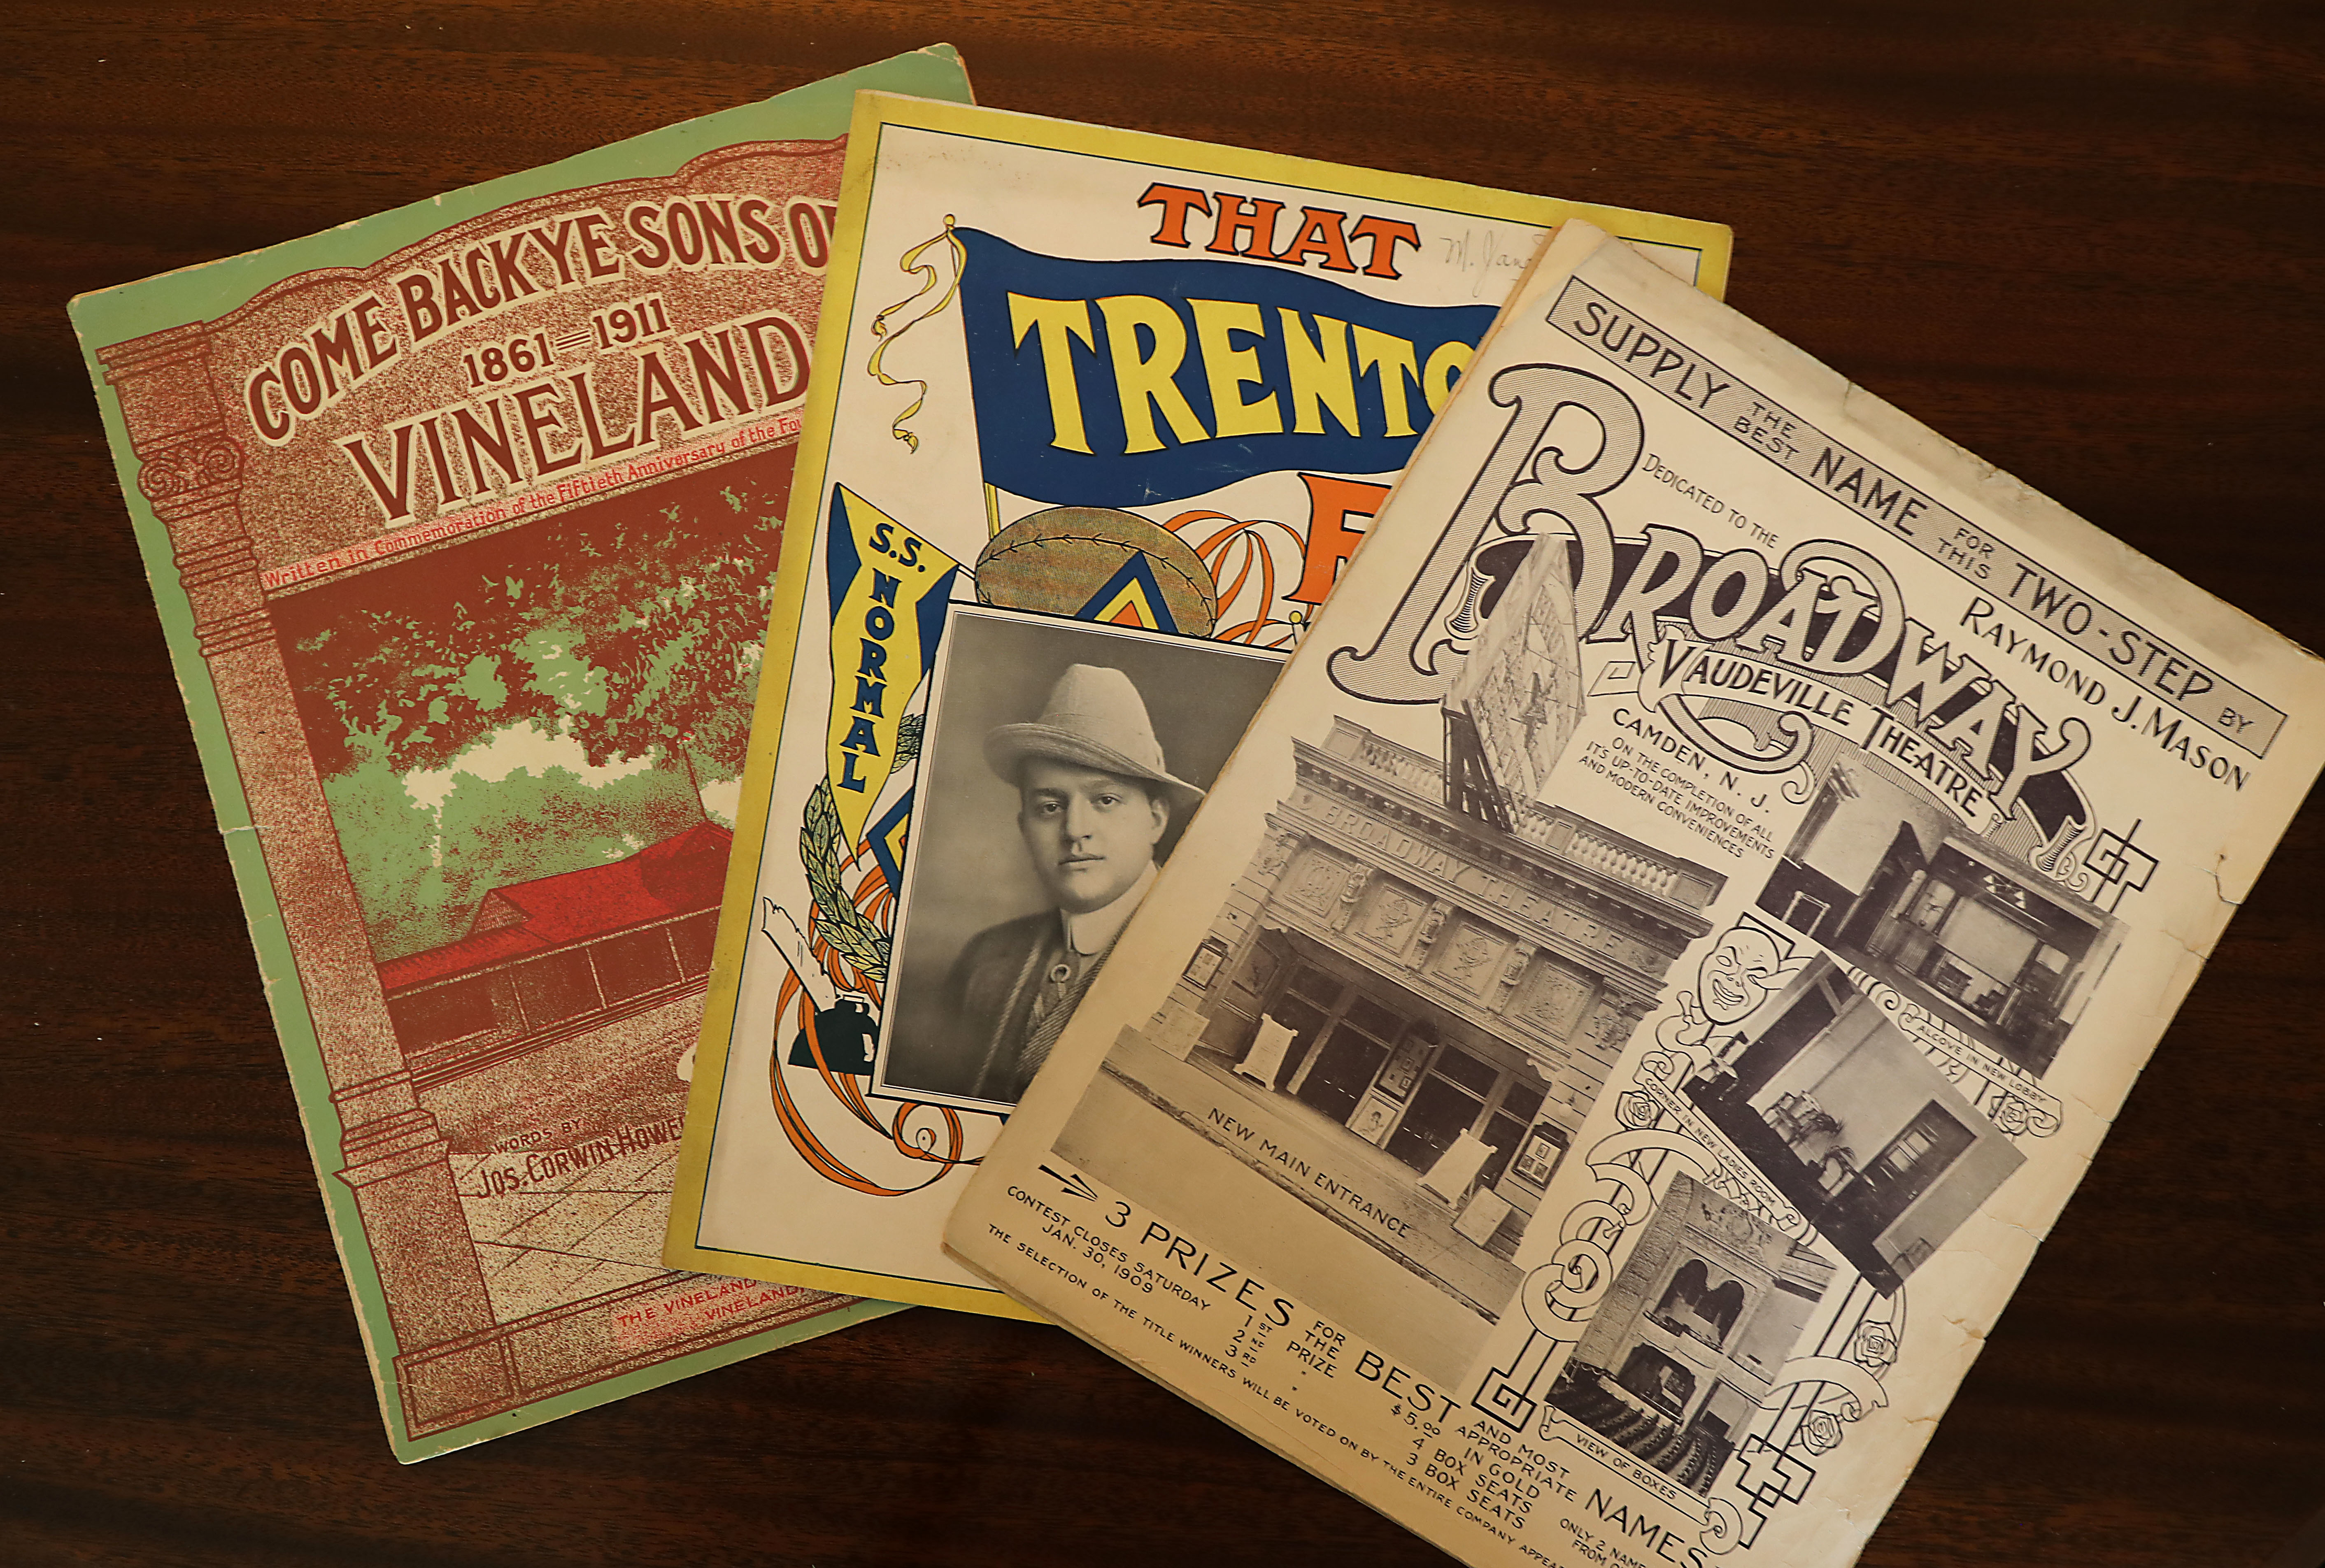 Sandy Marrone has collected a large number of sheet music for songs about New Jersey and Pennsylvania, among other places. Pictured are selections related to Vineland, Trenton and Camden.